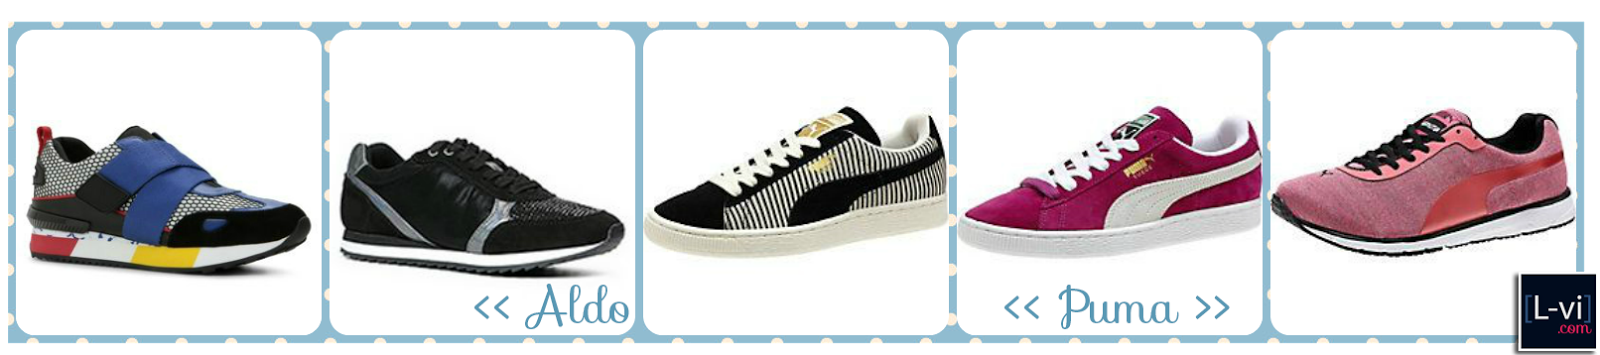 SS15 Sneakers for the ladies L-vi.com